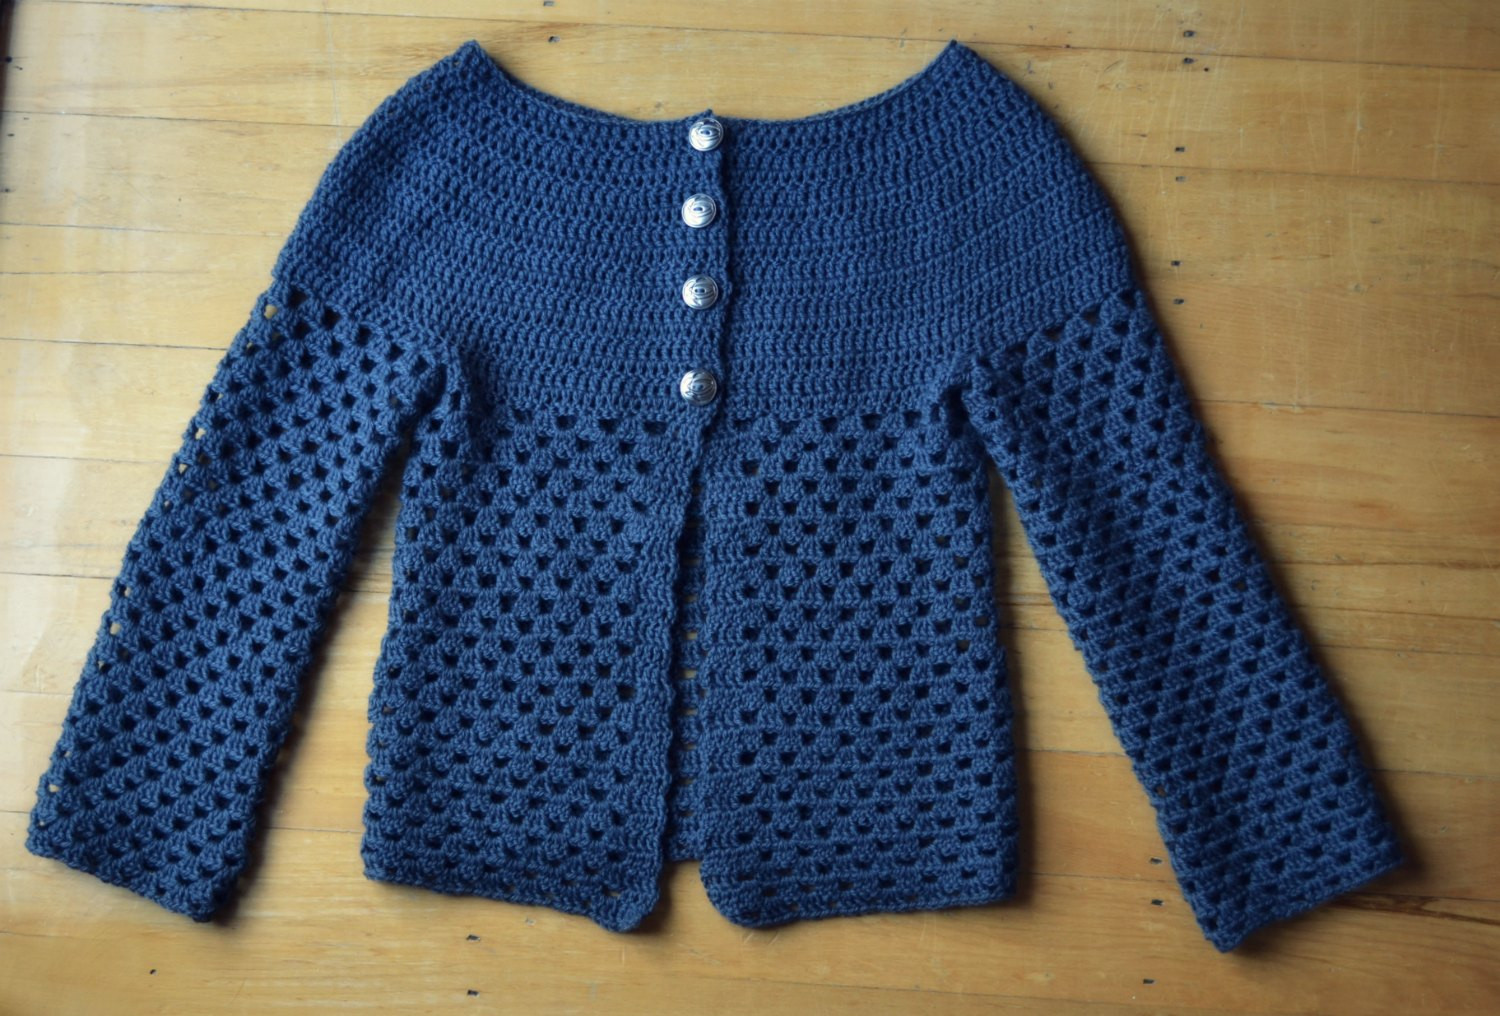 Crochet Sweaters Inspirational New Crochet Cardigan – the Green Dragonfly Of Fresh 50 Images Crochet Sweaters